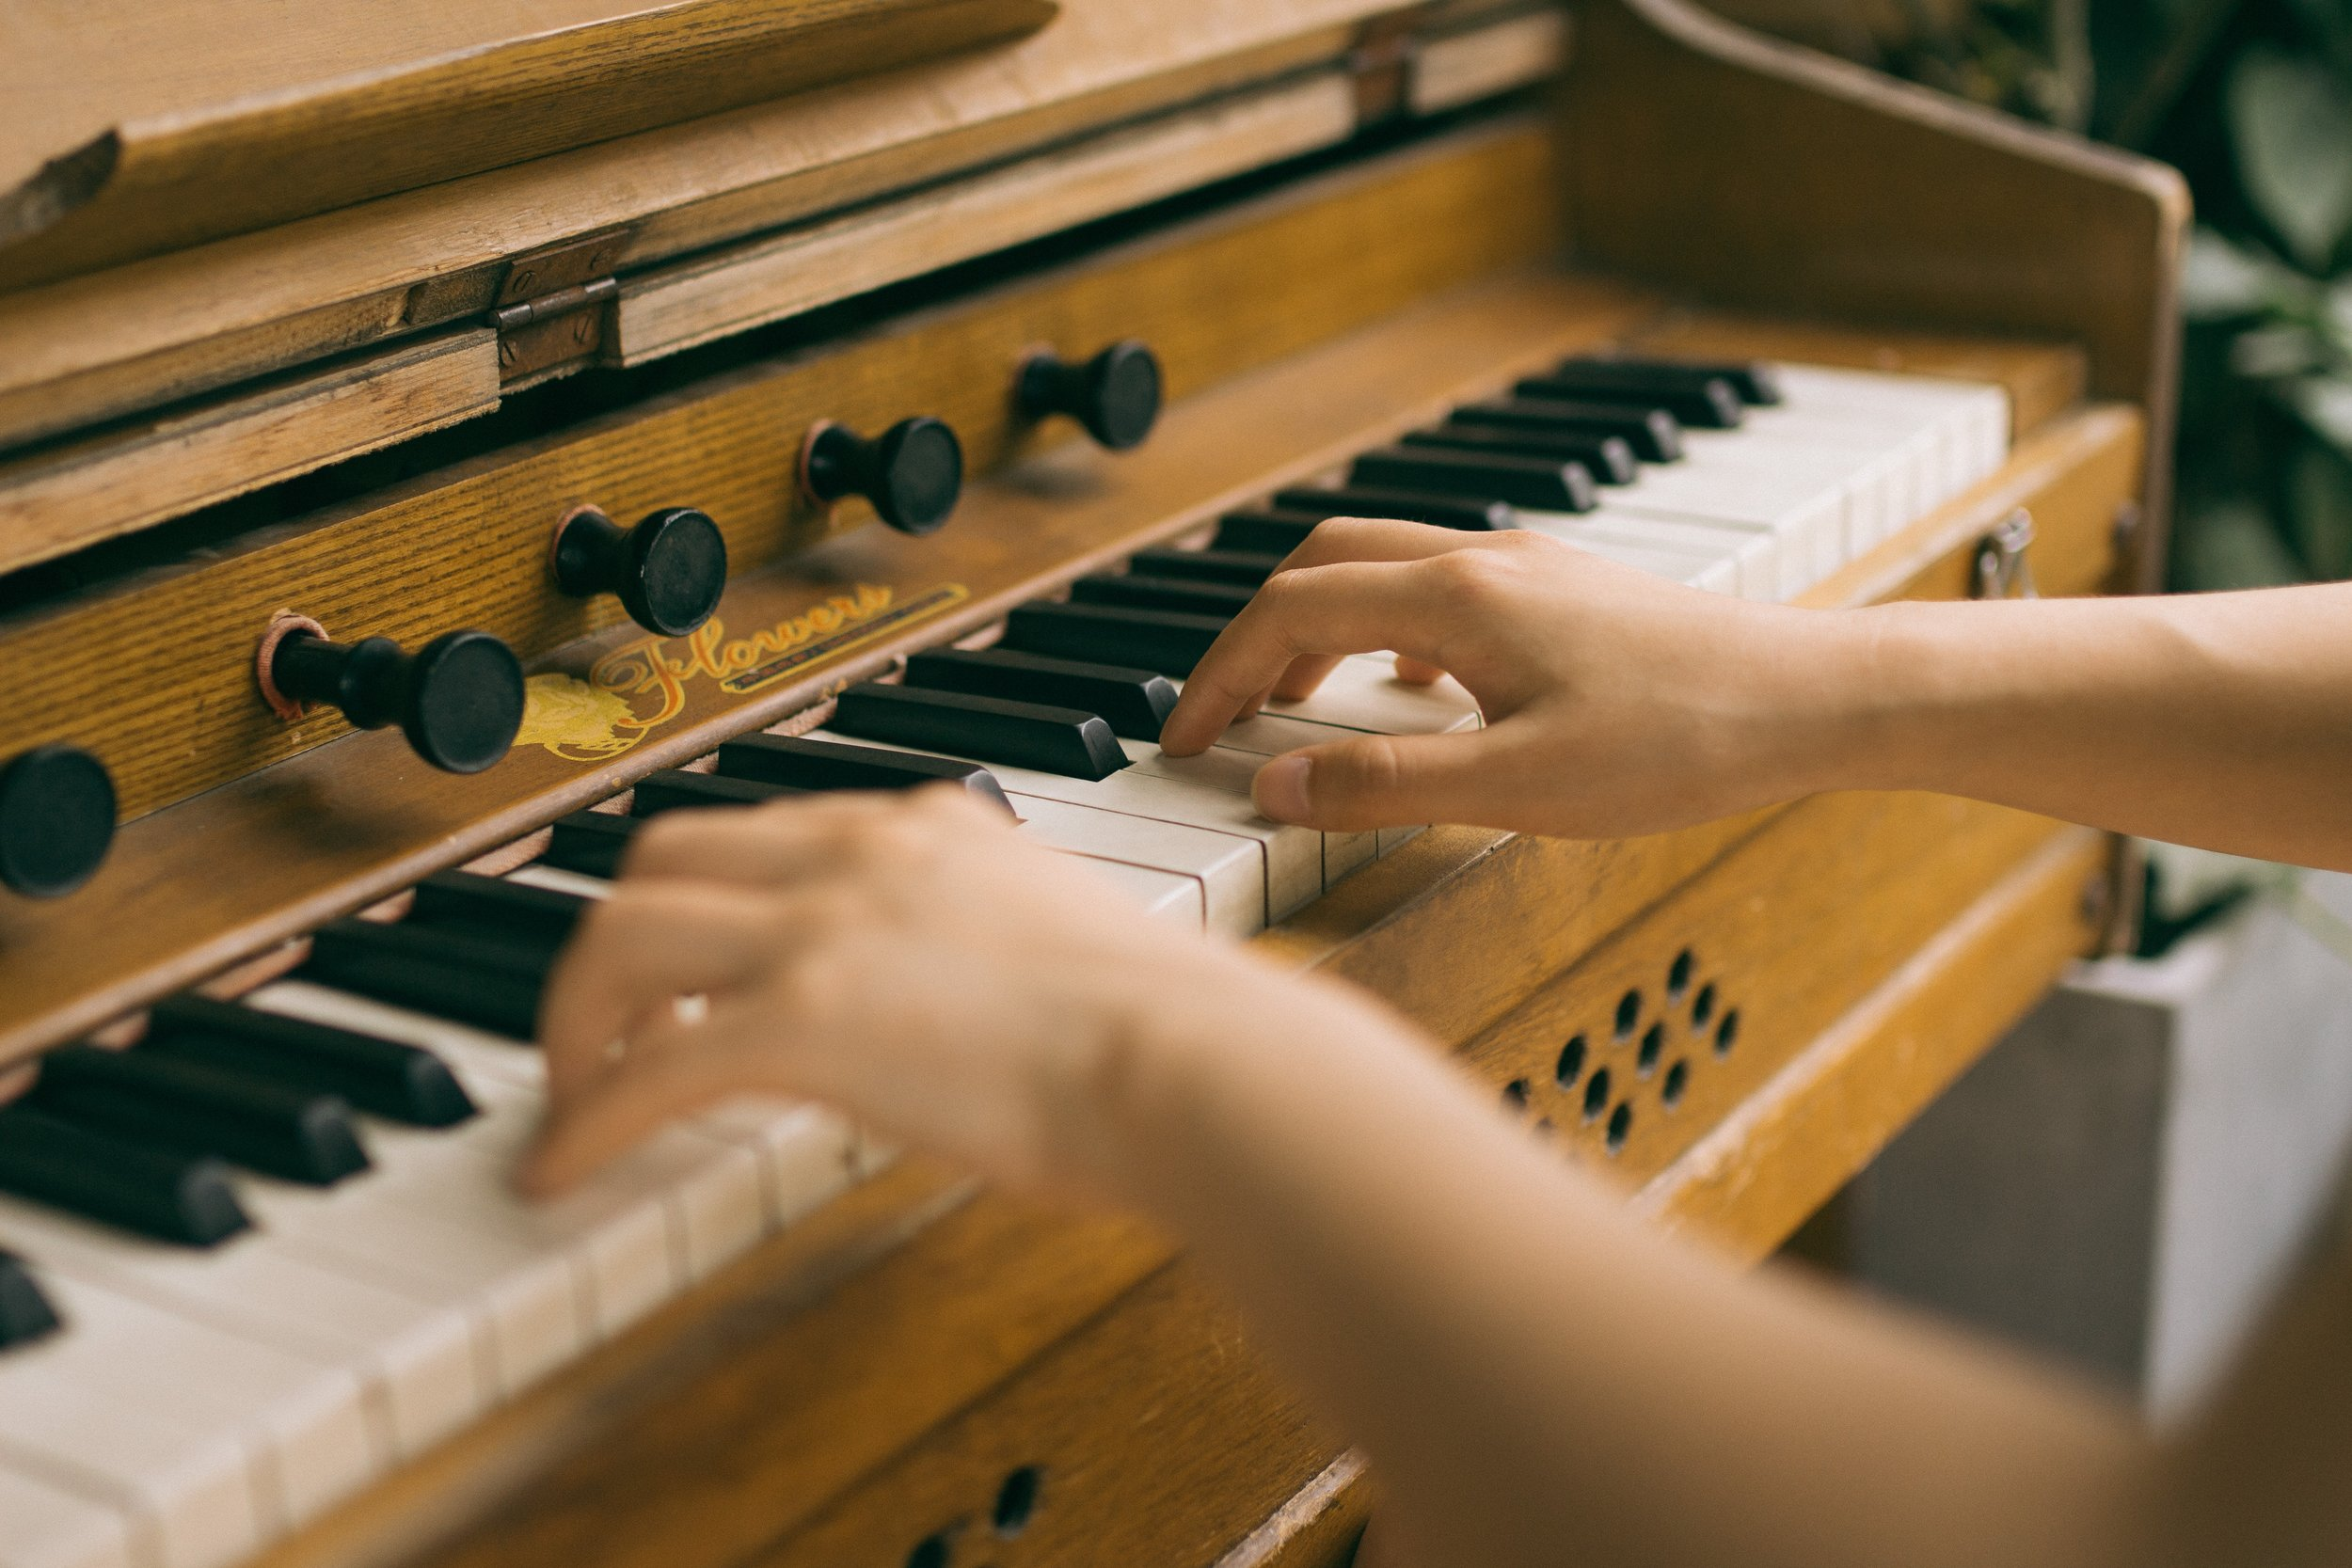 - AnxietyStress also brings mixed emotions such as anger and social withdrawal to people suffering from anxiety. Music therapy works to help ease those negative mentalities and improve overall positivity.